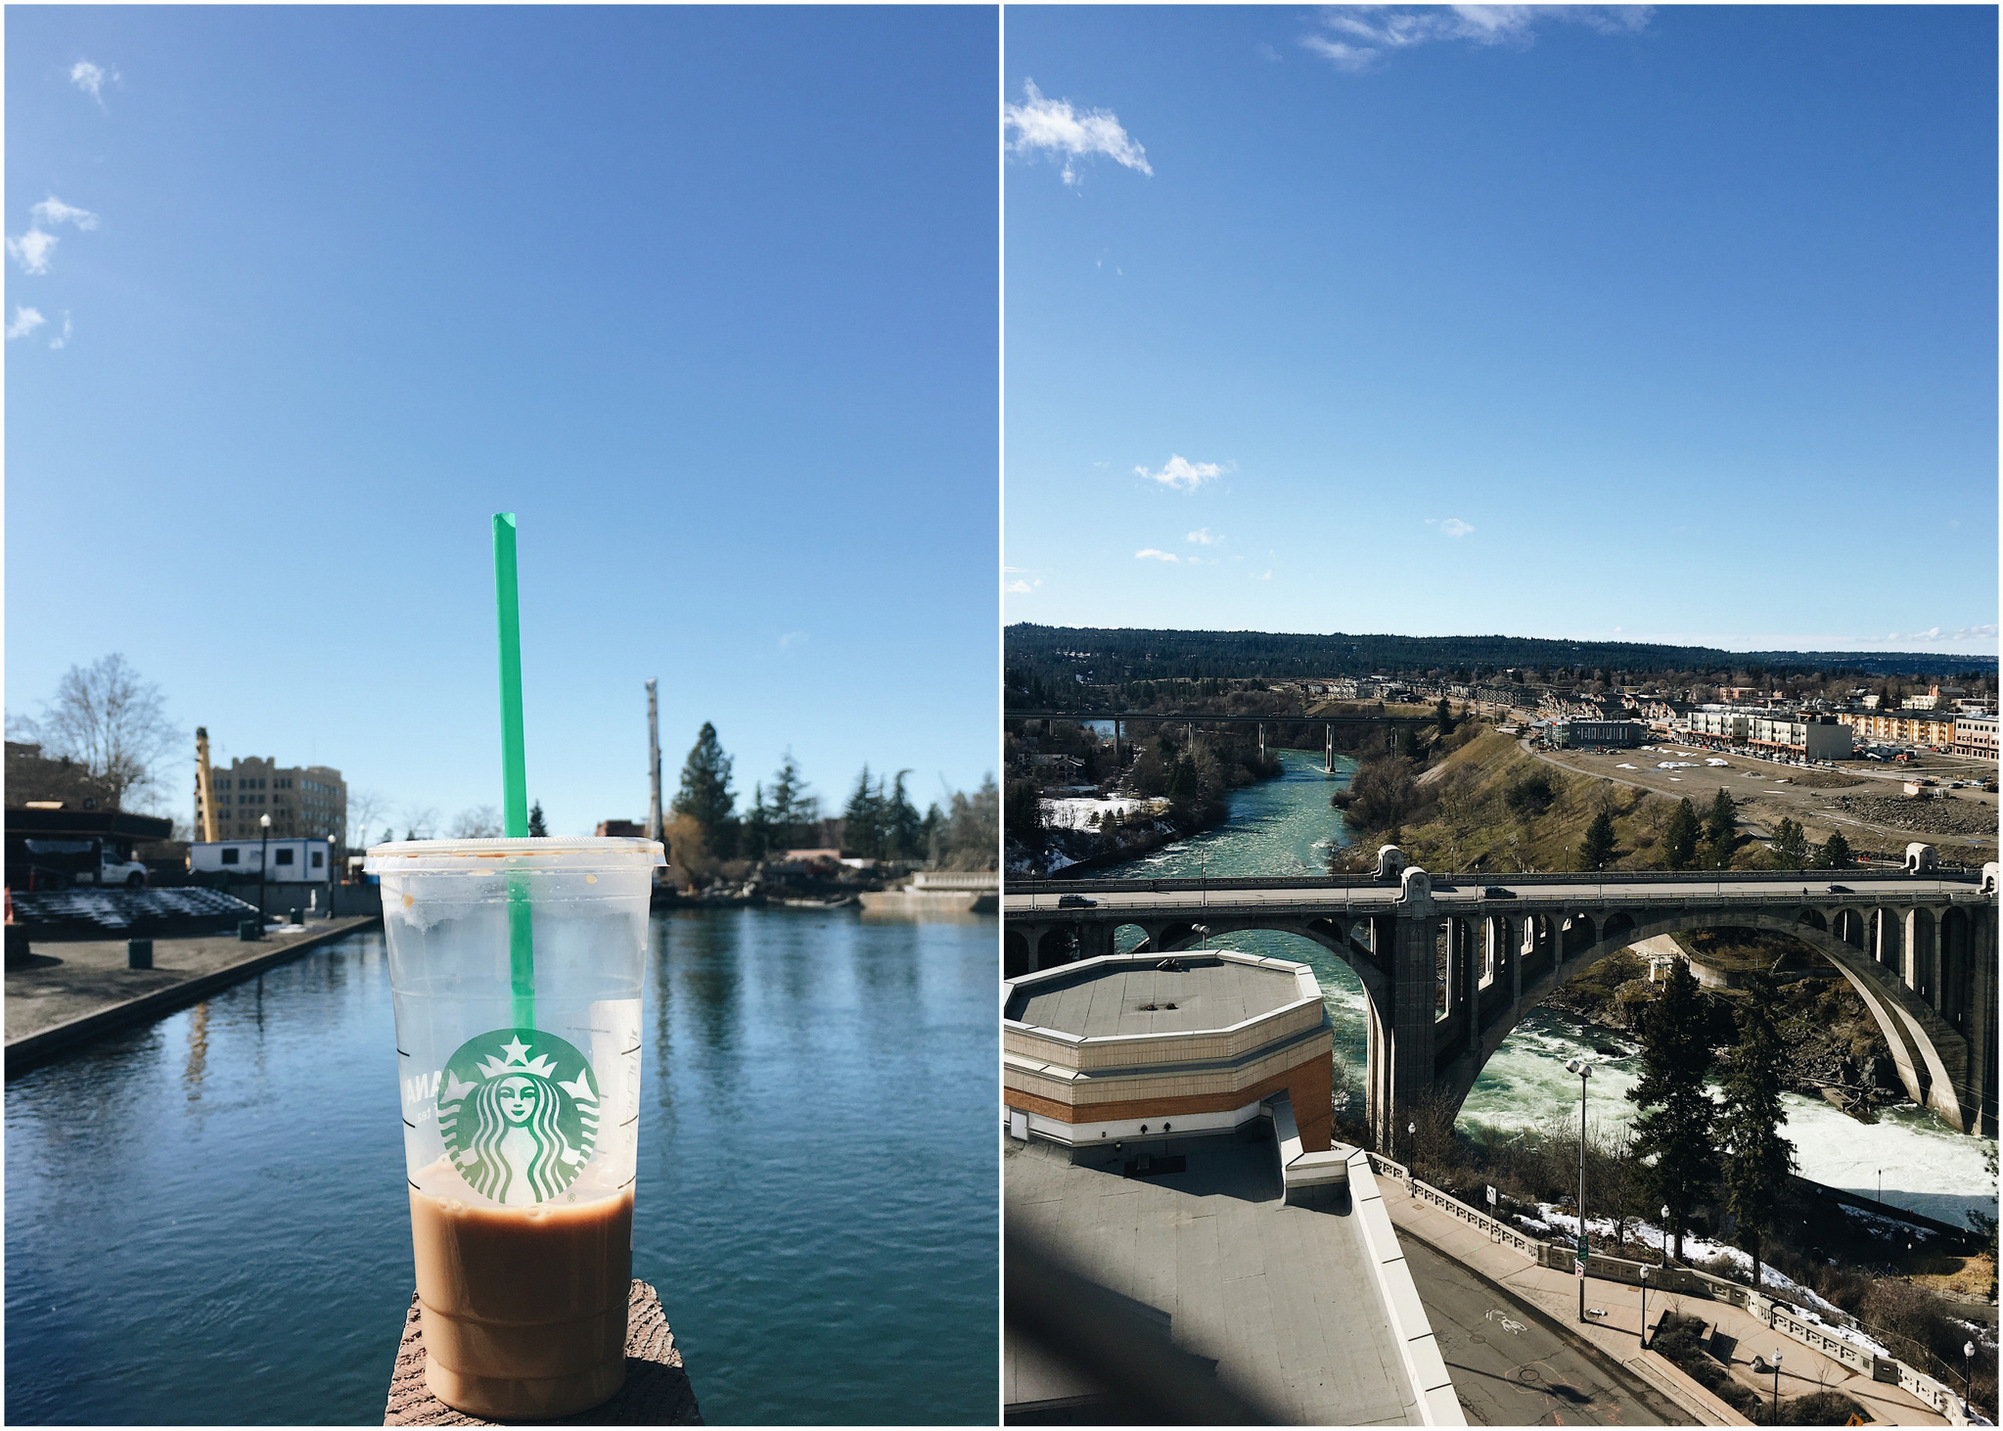 spokane washington and starbucks